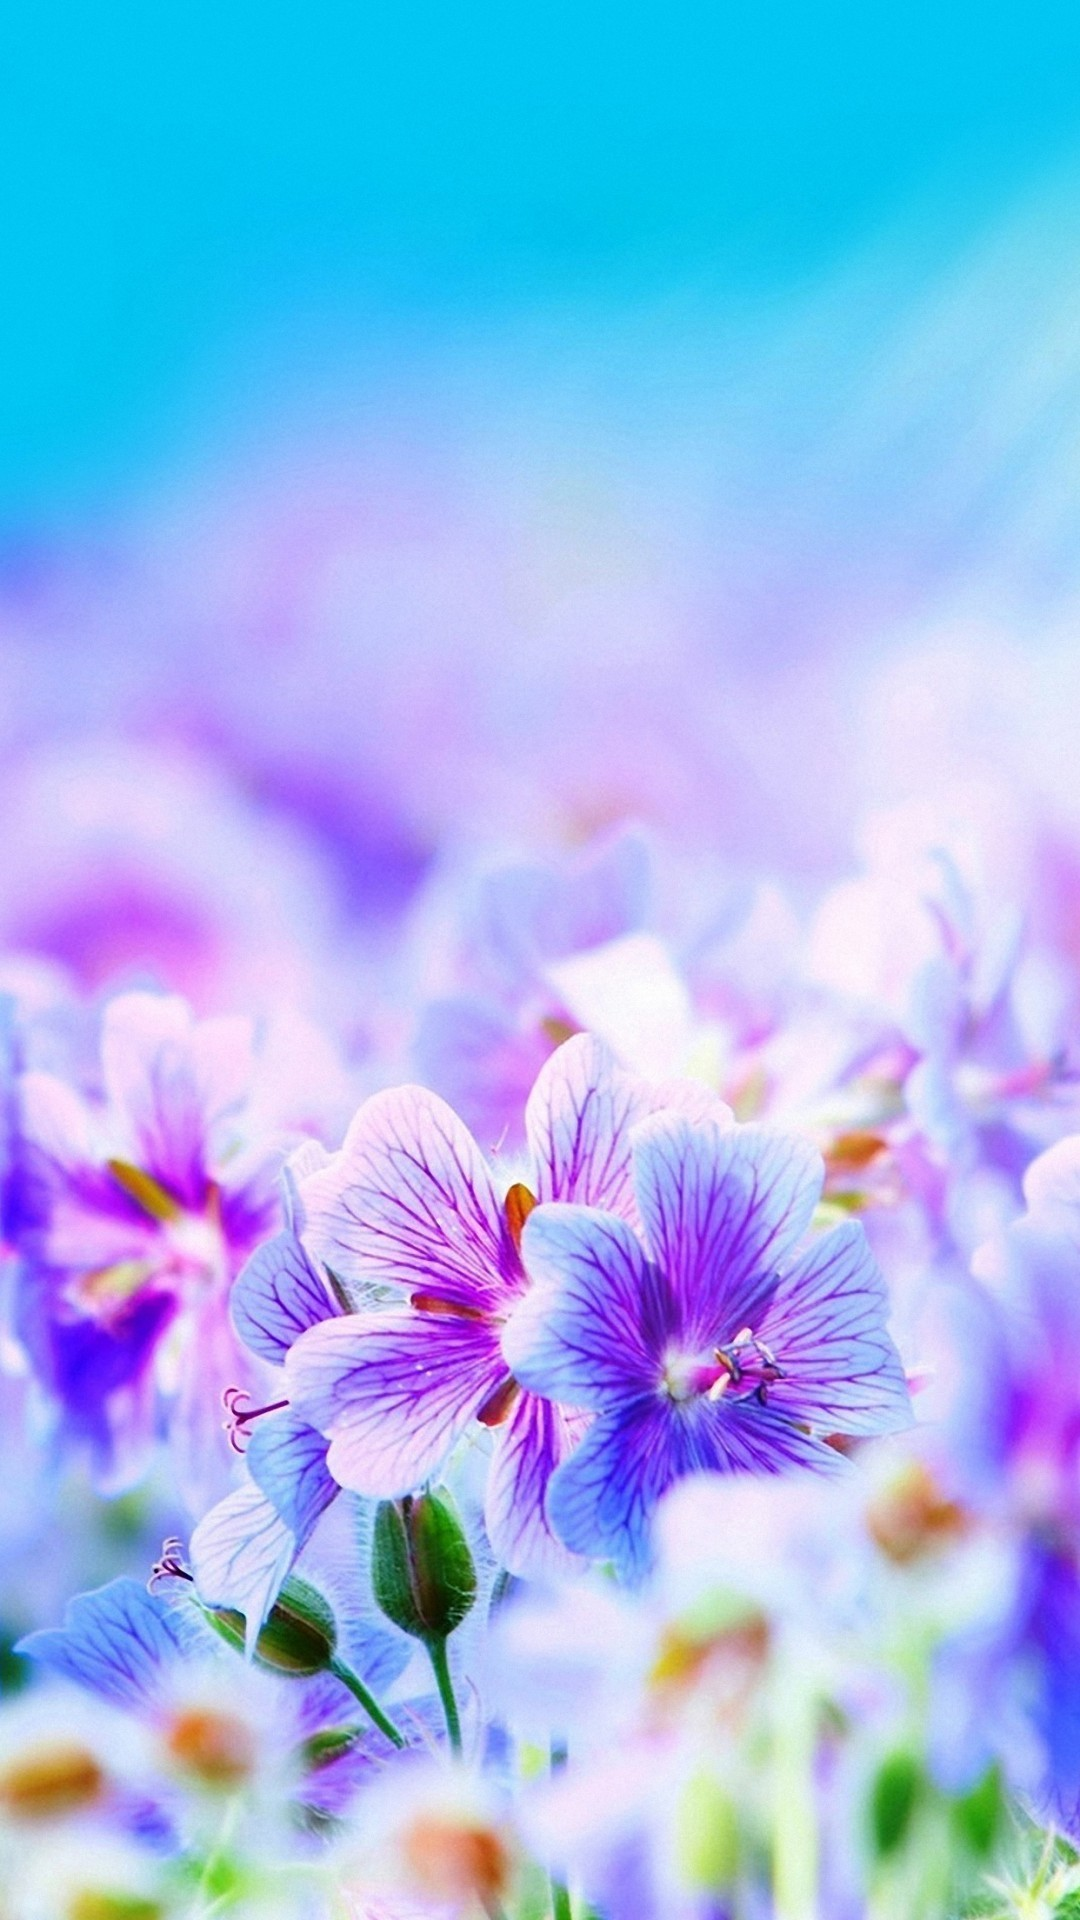 Really cute wallpapers 60 images 1080x1920 1080x1920 1080x1920 purple pretty flowers iphone 6s wallpapers hd mightylinksfo